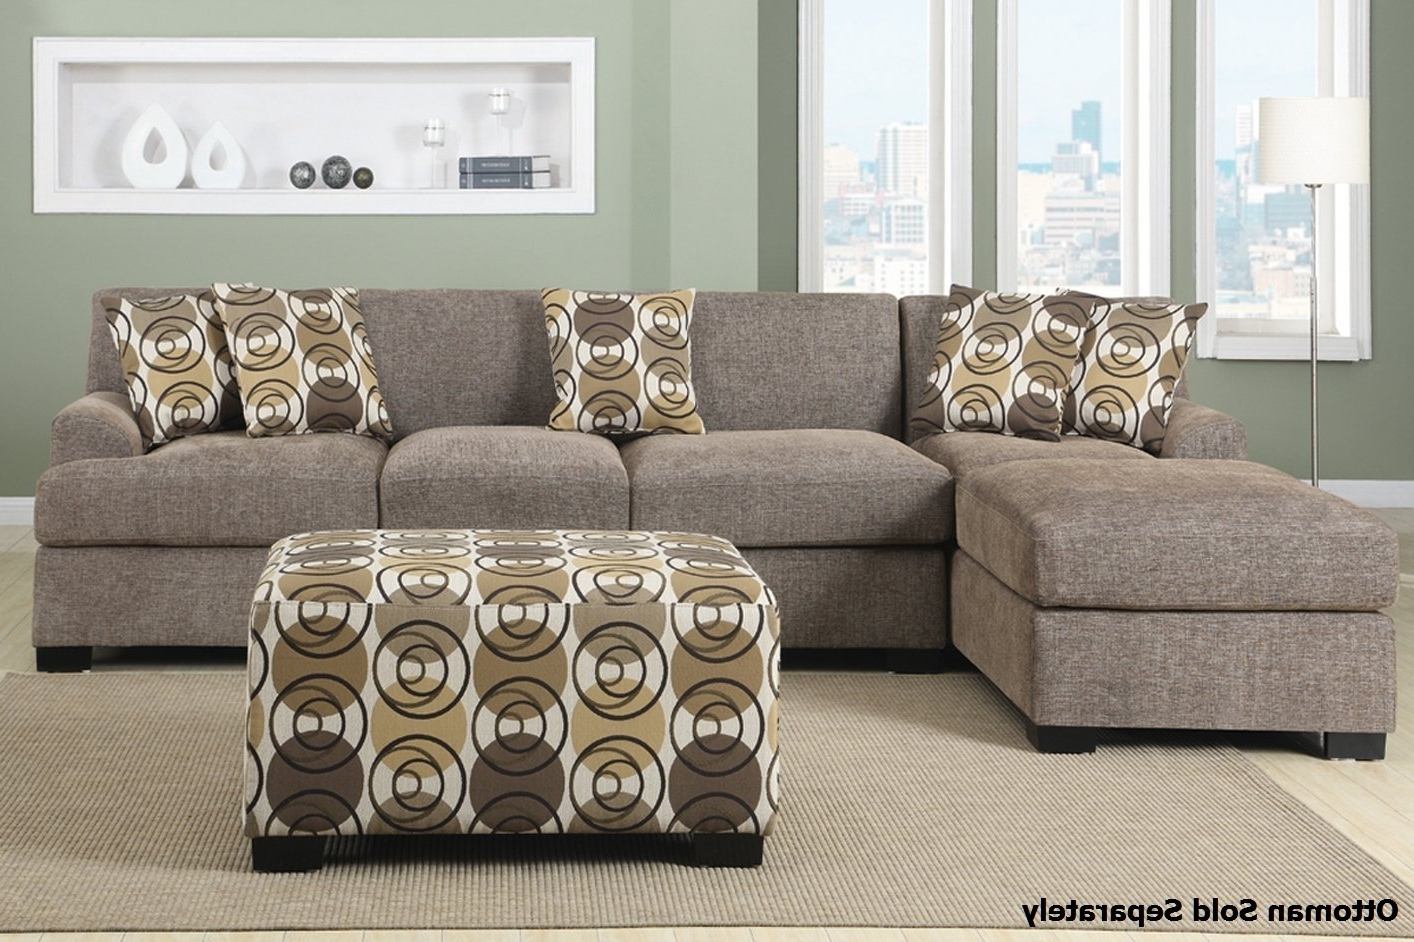 Montreal Iii Beige Fabric Sectional Sofa – Steal A Sofa Furniture Within Best And Newest Beige Sectional Sofas (View 14 of 20)